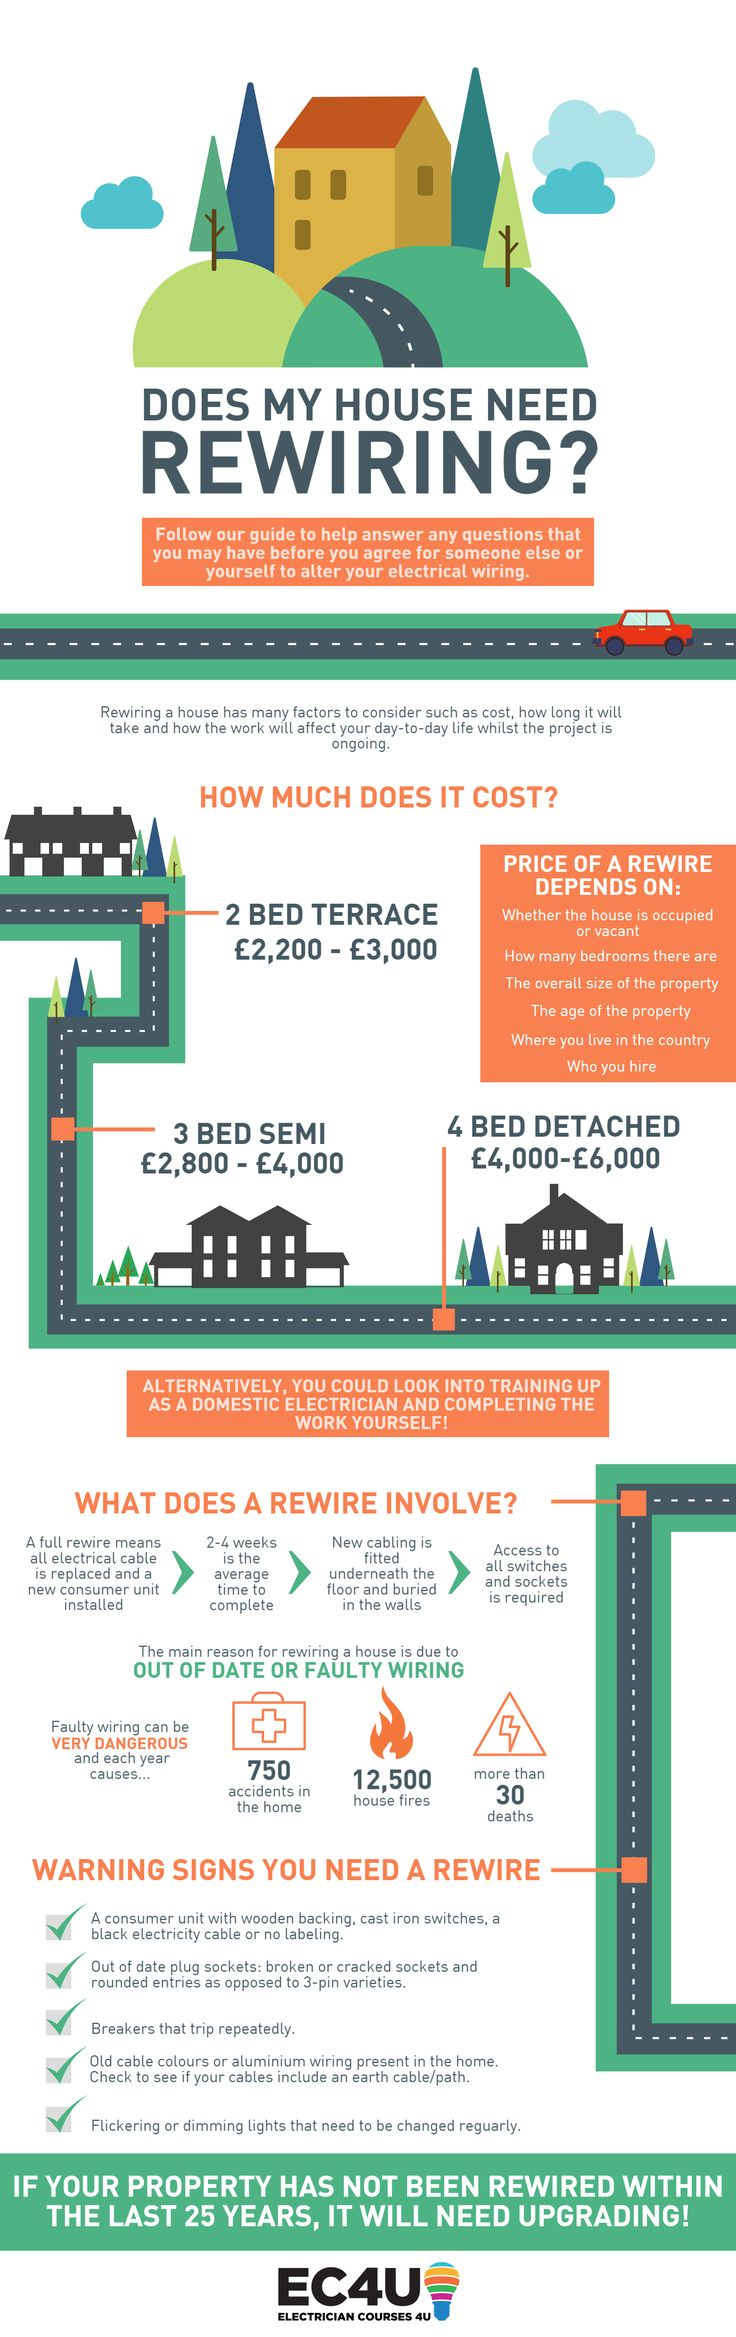 Does my house need rewiring? | How much does a house rewire cost?